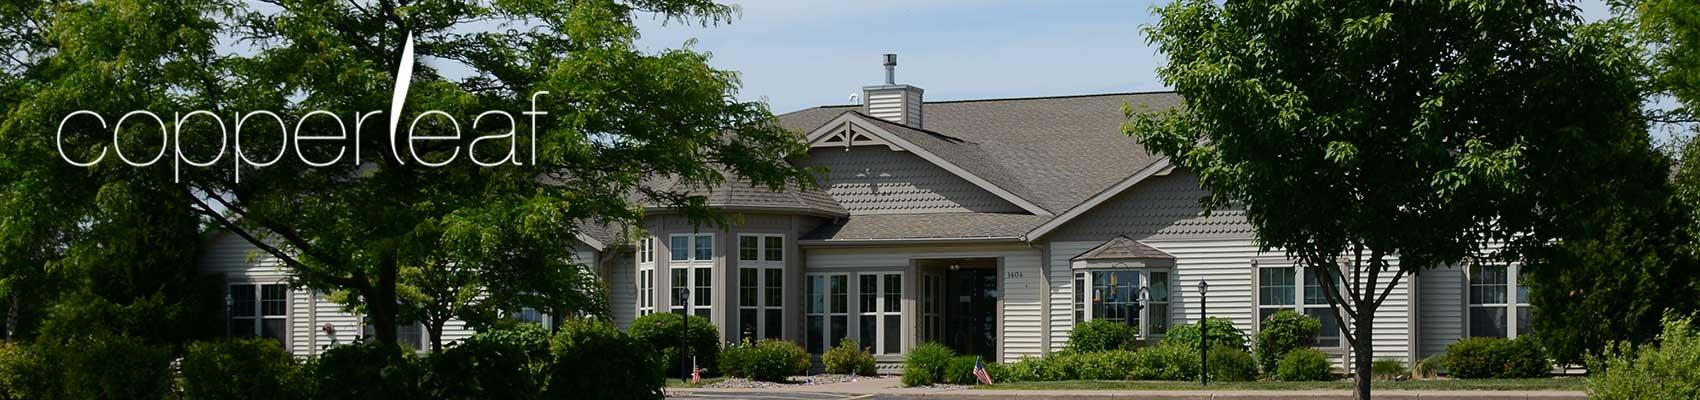 Assisted Living assisted living facilities Brandon Wisconsin Fond du Lac County